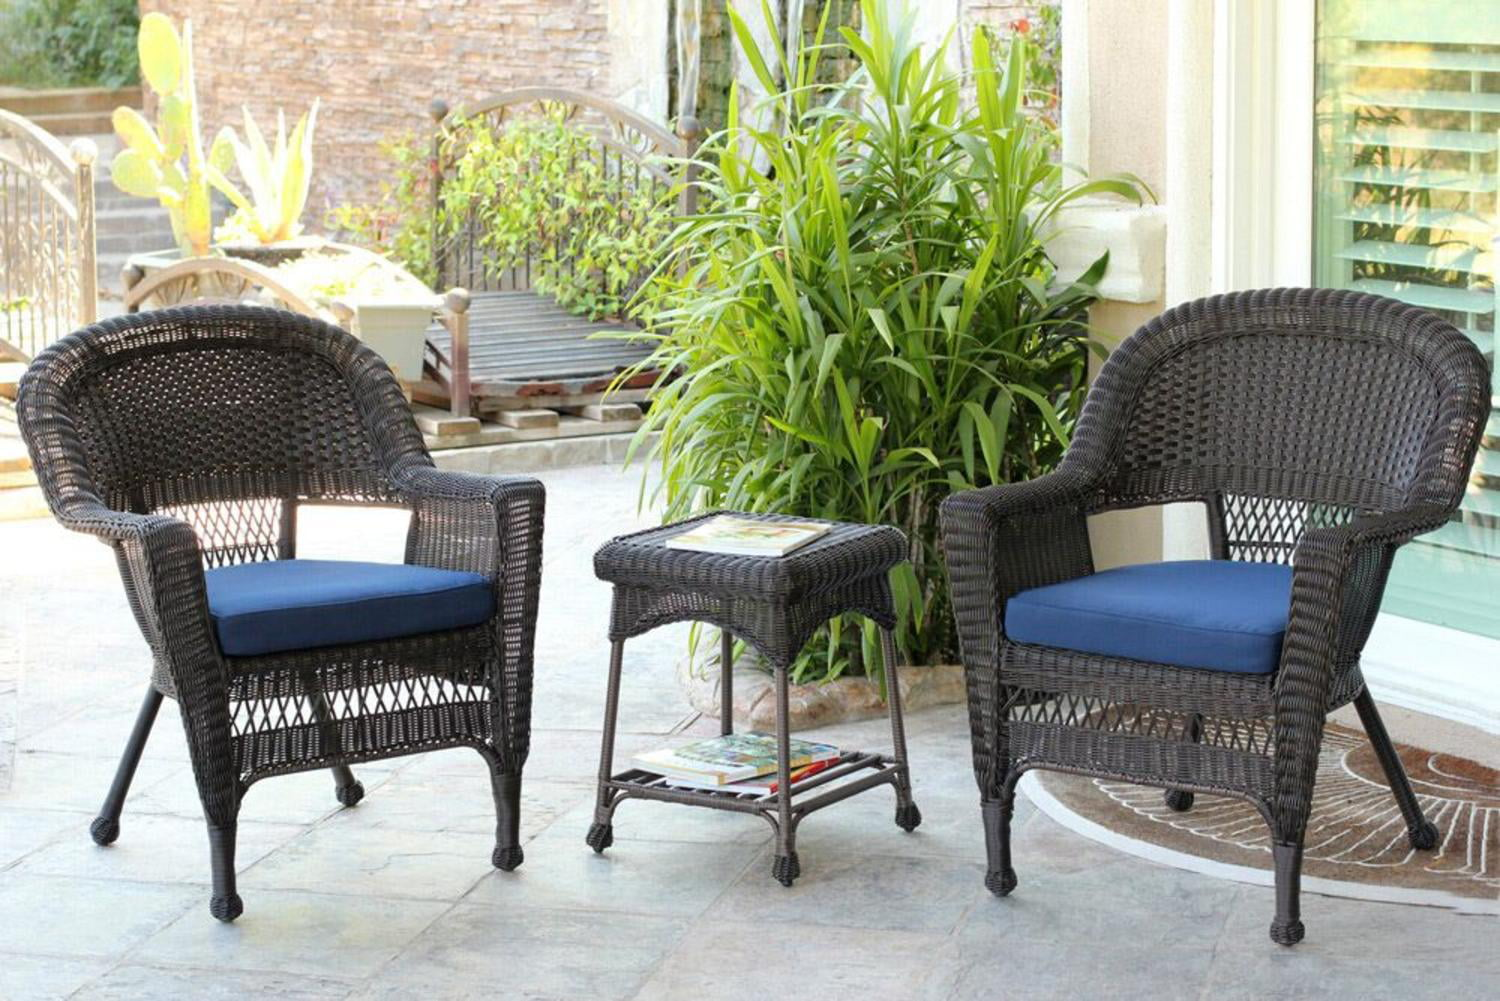 Costway 11 PCS Outdoor Patio Dining Set Metal Rattan Wicker Furniture  Garden Cushioned - Walmart.com - Costway 11 PCS Outdoor Patio Dining Set Metal Rattan Wicker